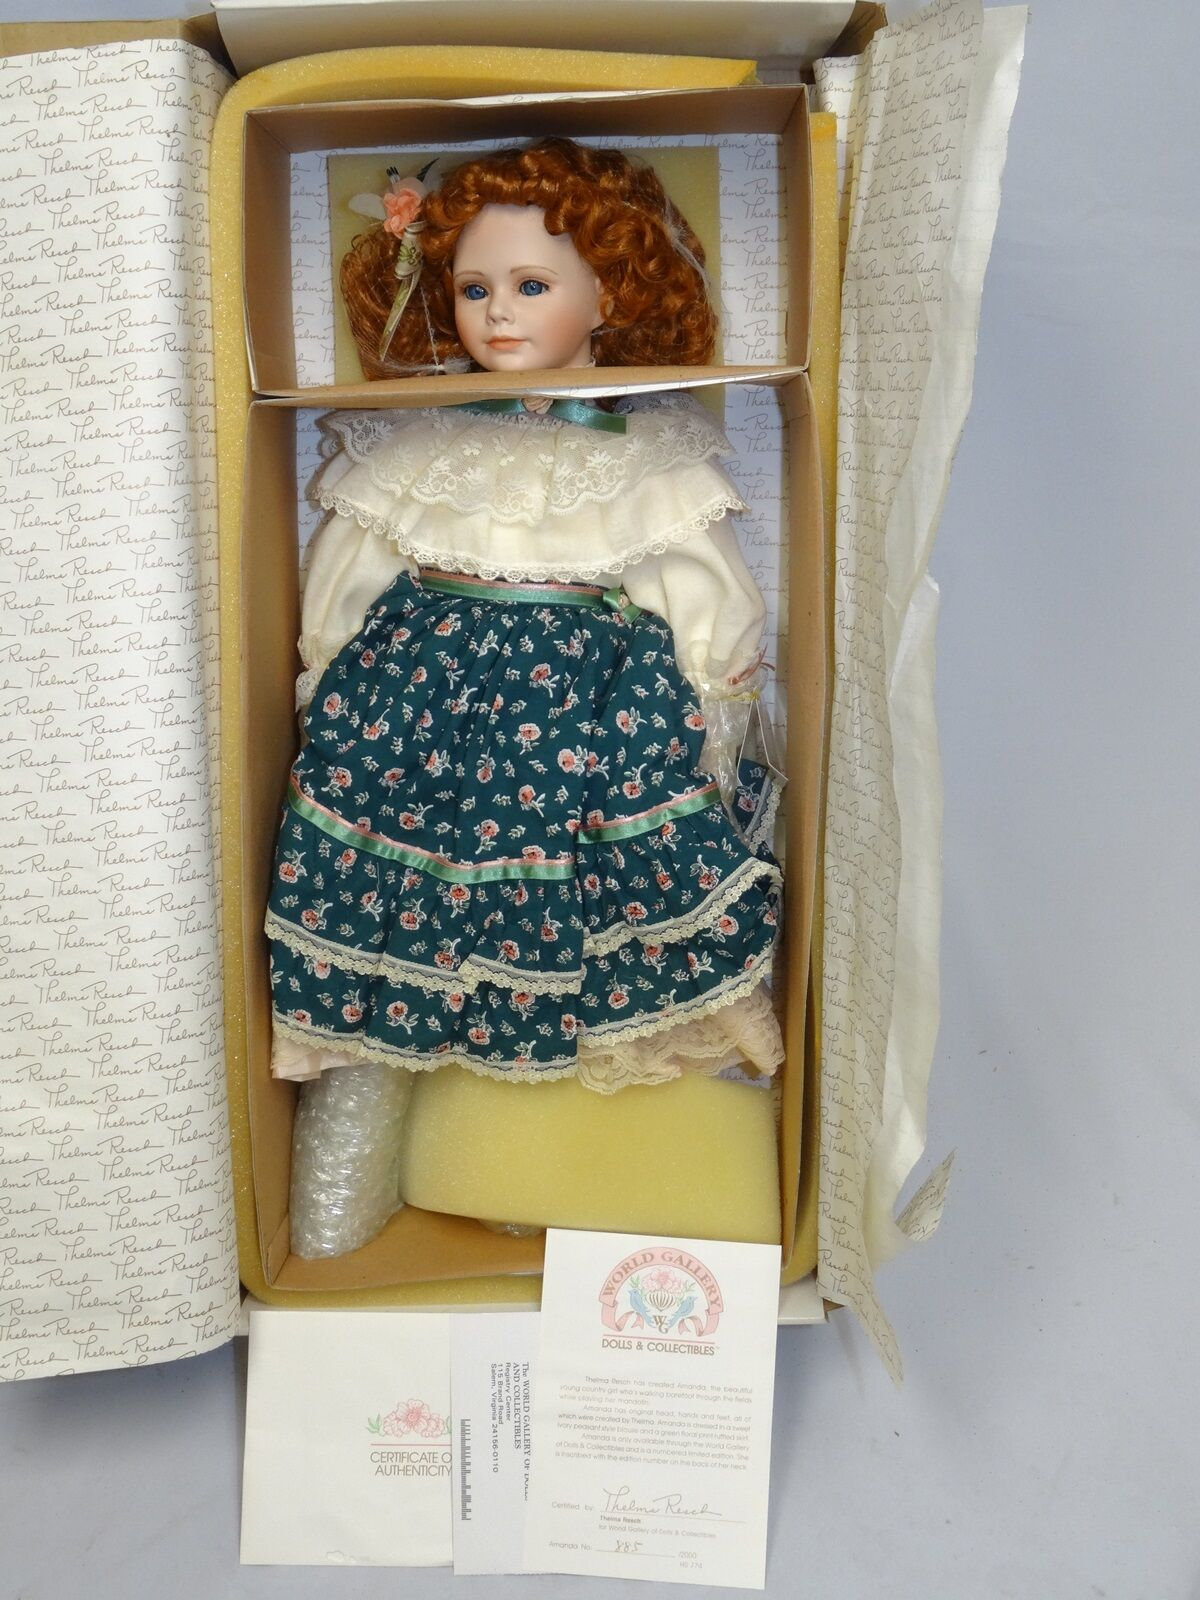 LIMITED 885 2000 AMANDA by THELMA RESCH WORLD GALLERY DOLL  23   NIB